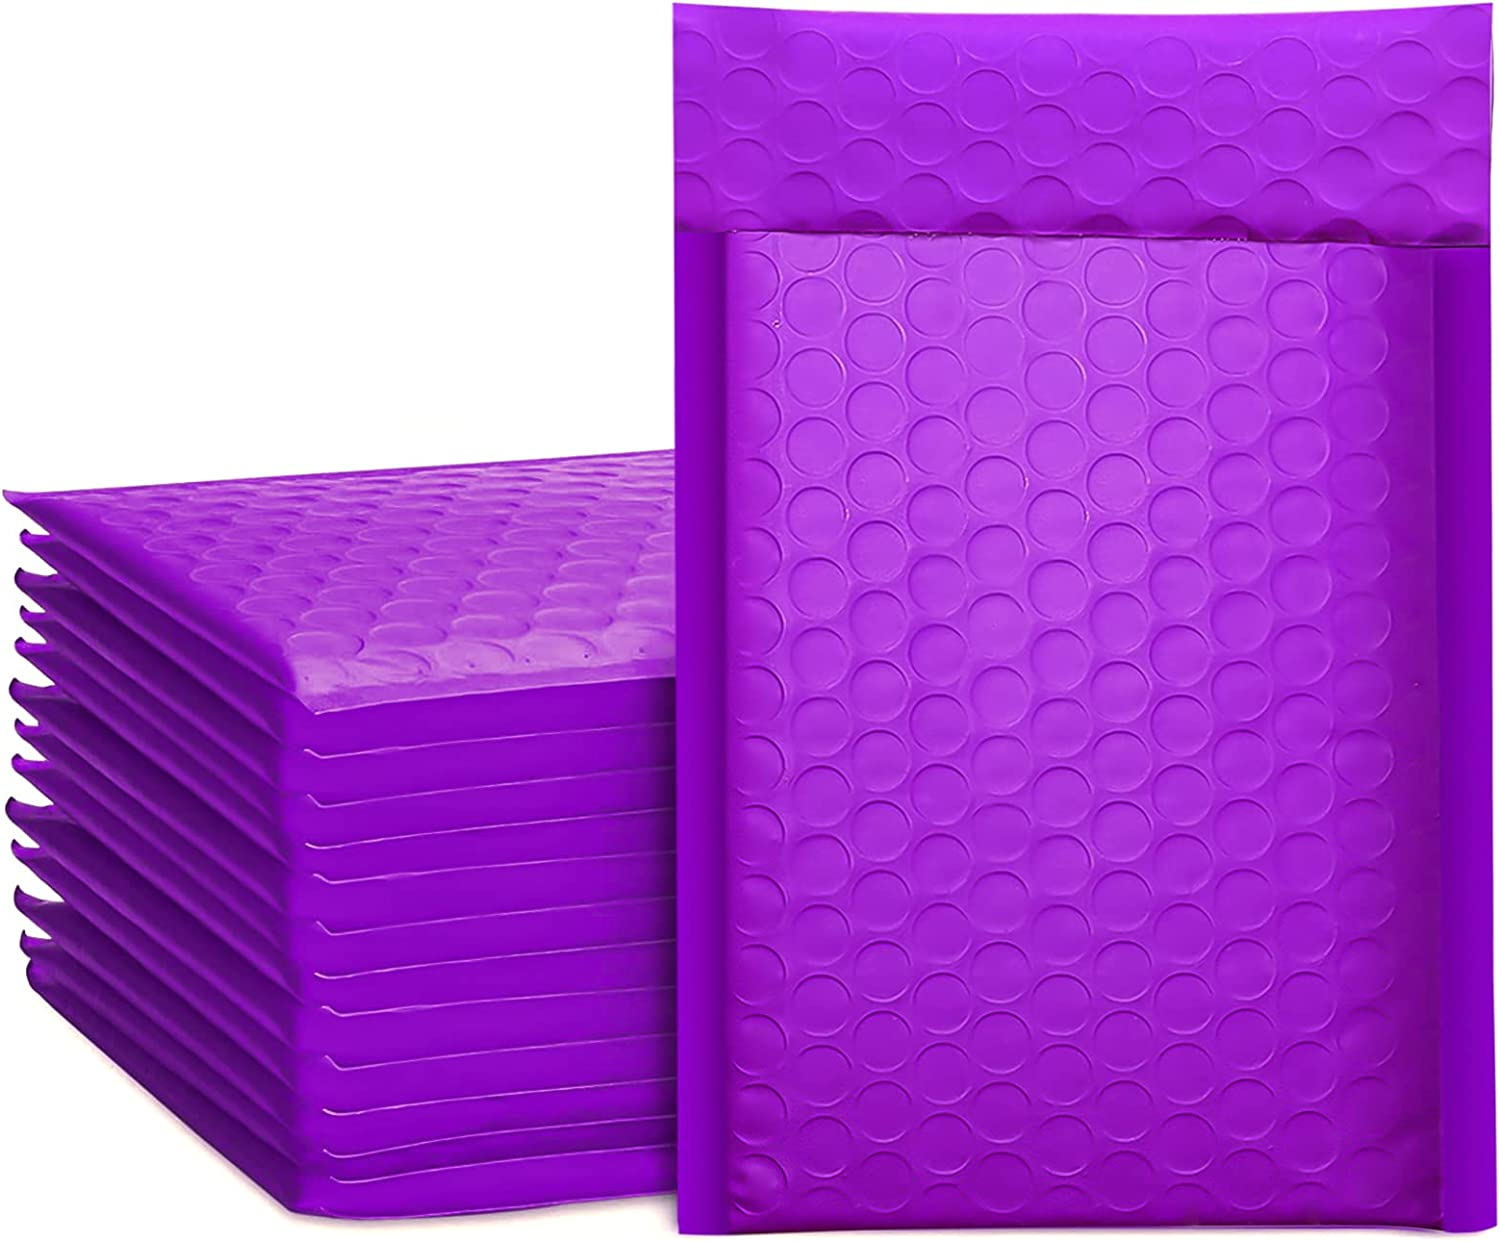 Metronic 50Pcs Poly Bubble Mailers, 4X8 Inch Padded Envelopes Bulk #000, Bubble Lined Wrap Polymailer Bags for Shipping/ Packaging/ Mailing Self Seal -Purple